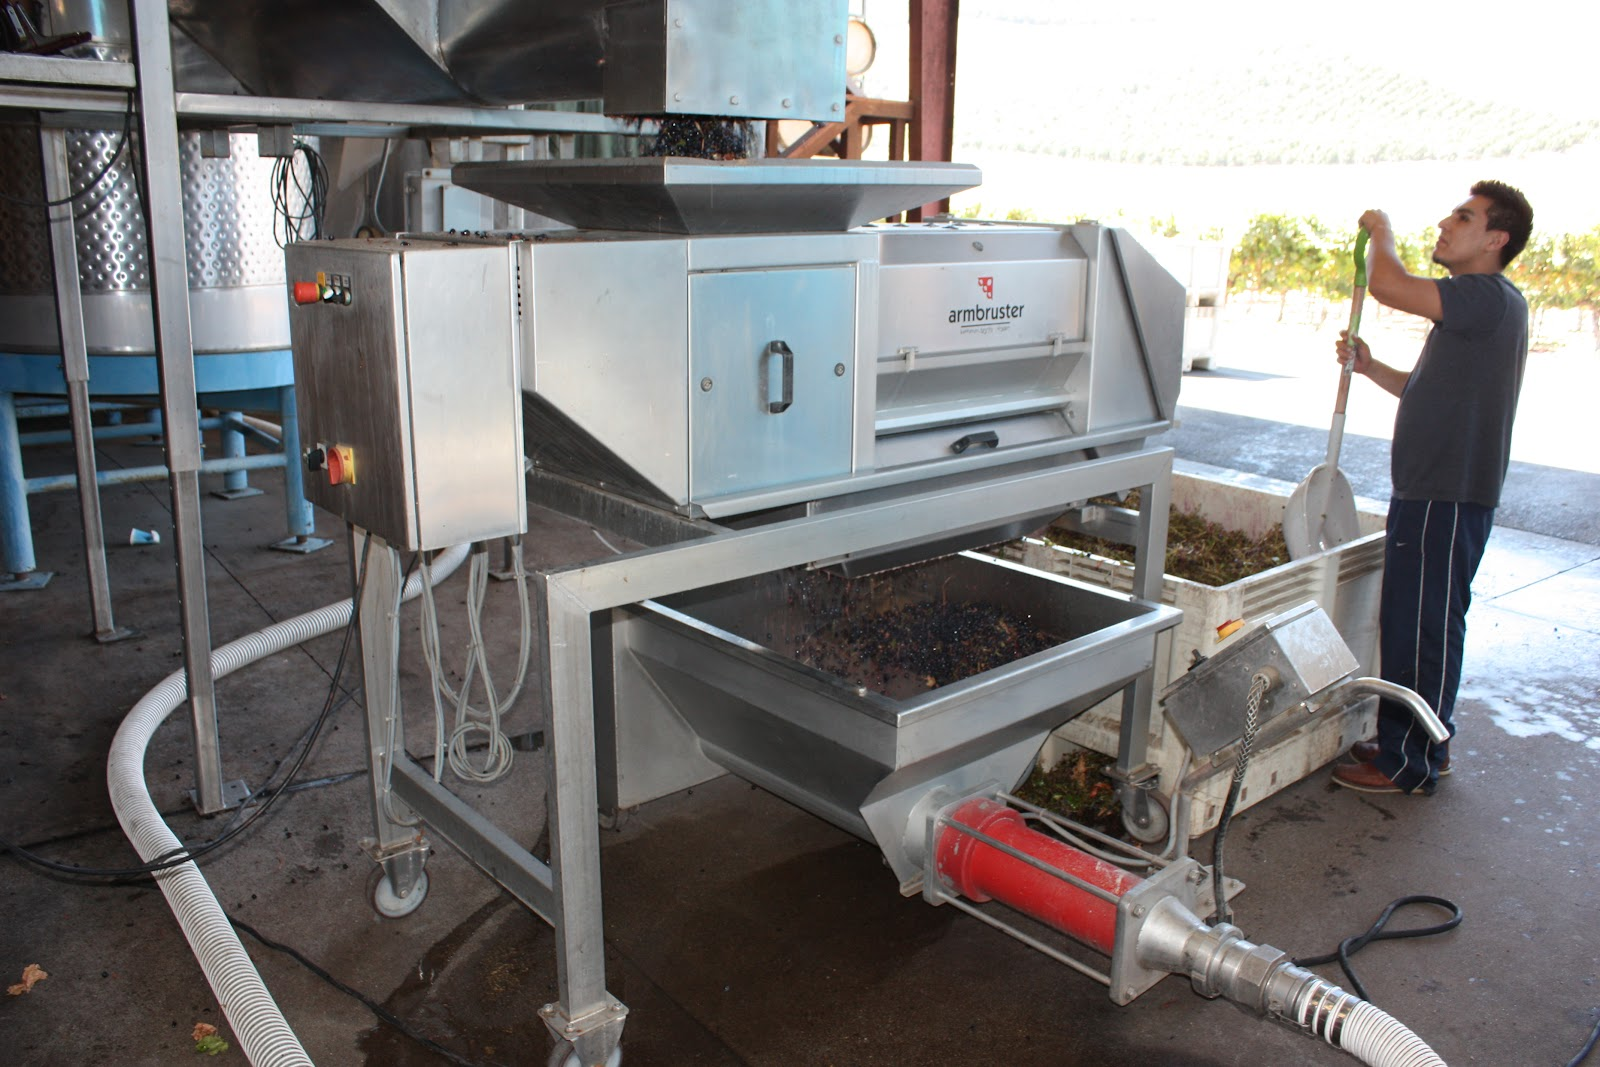 The crusher hard at work on the newly-picked Grenache